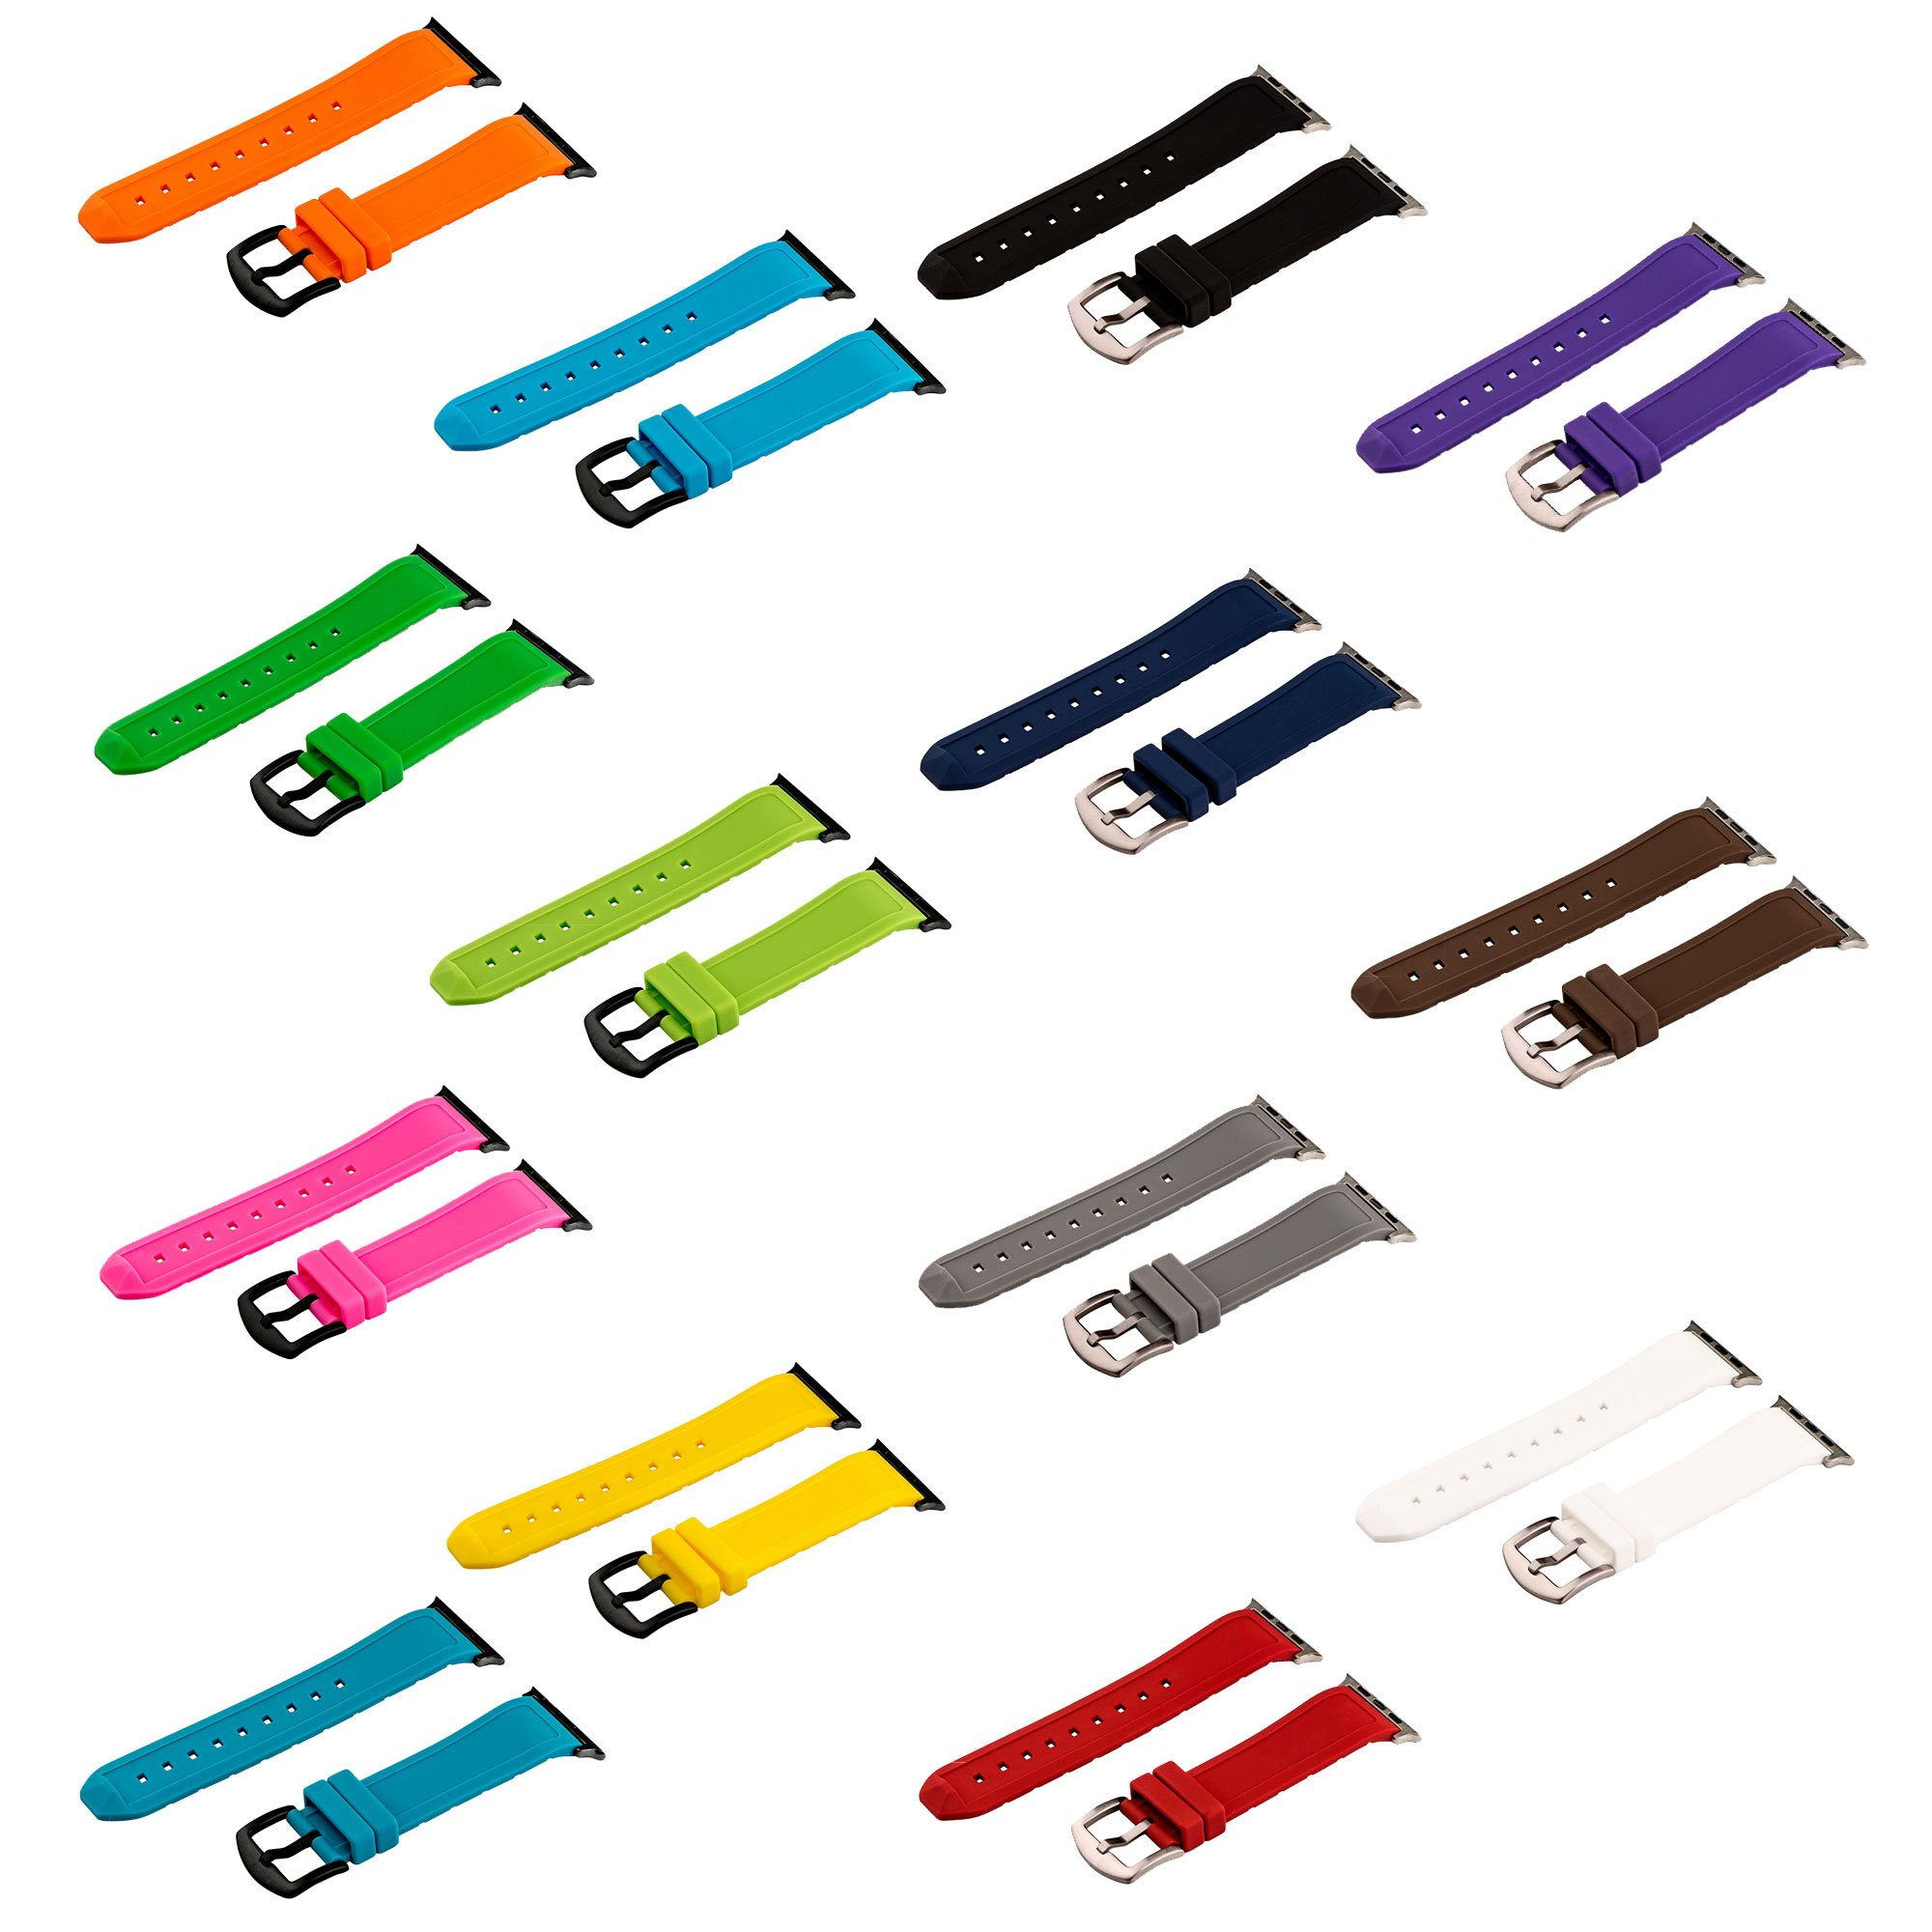 Clockwork Synergy - Set of 14 Divers Silicone Watch Bands for 42mm Apple Watch (Brushed Steel Hardware)